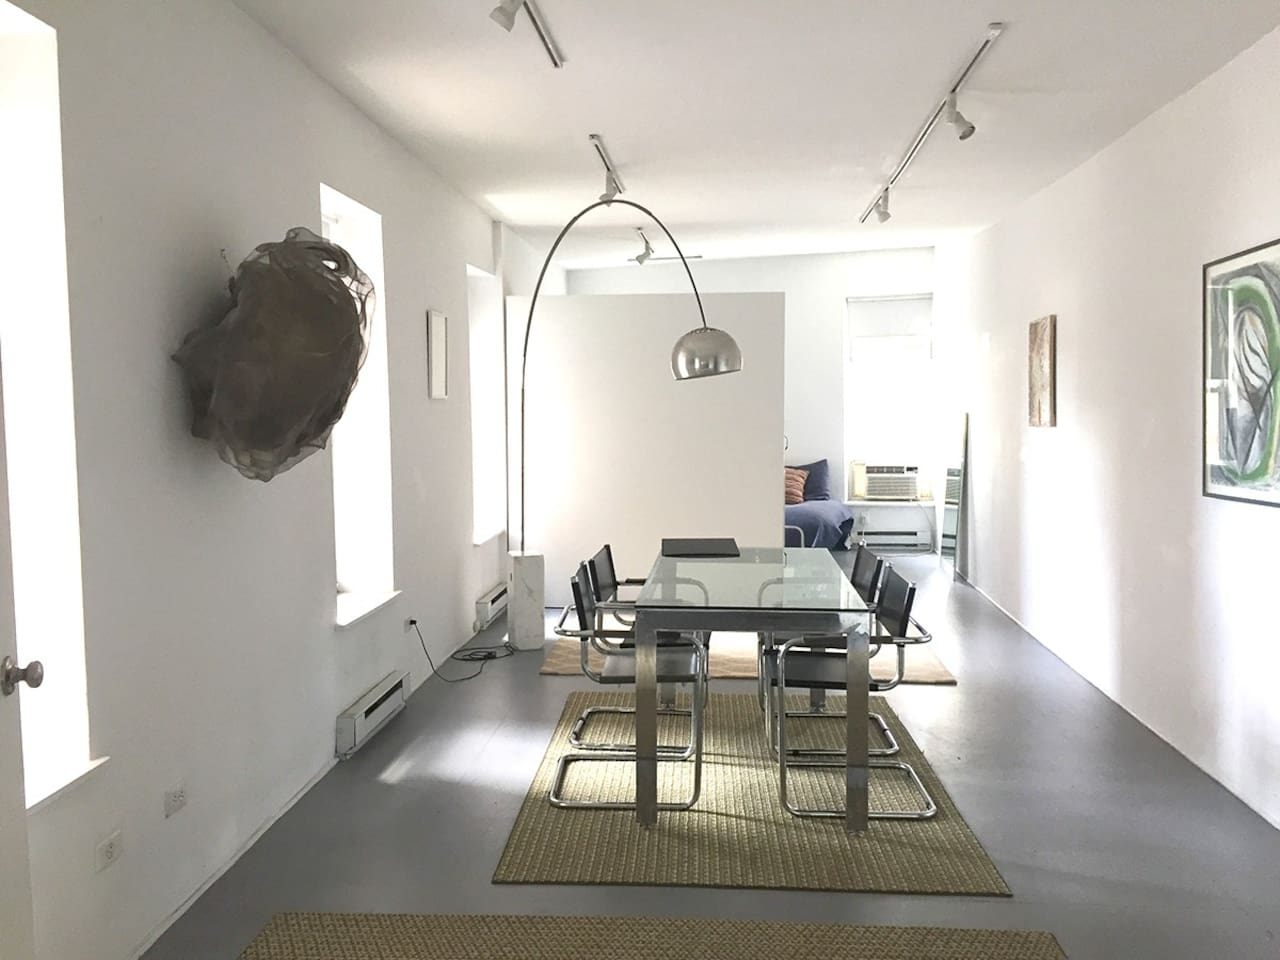 The Dining Living Room With Modernist Stainless Still And Glass Stream Lined Furniture